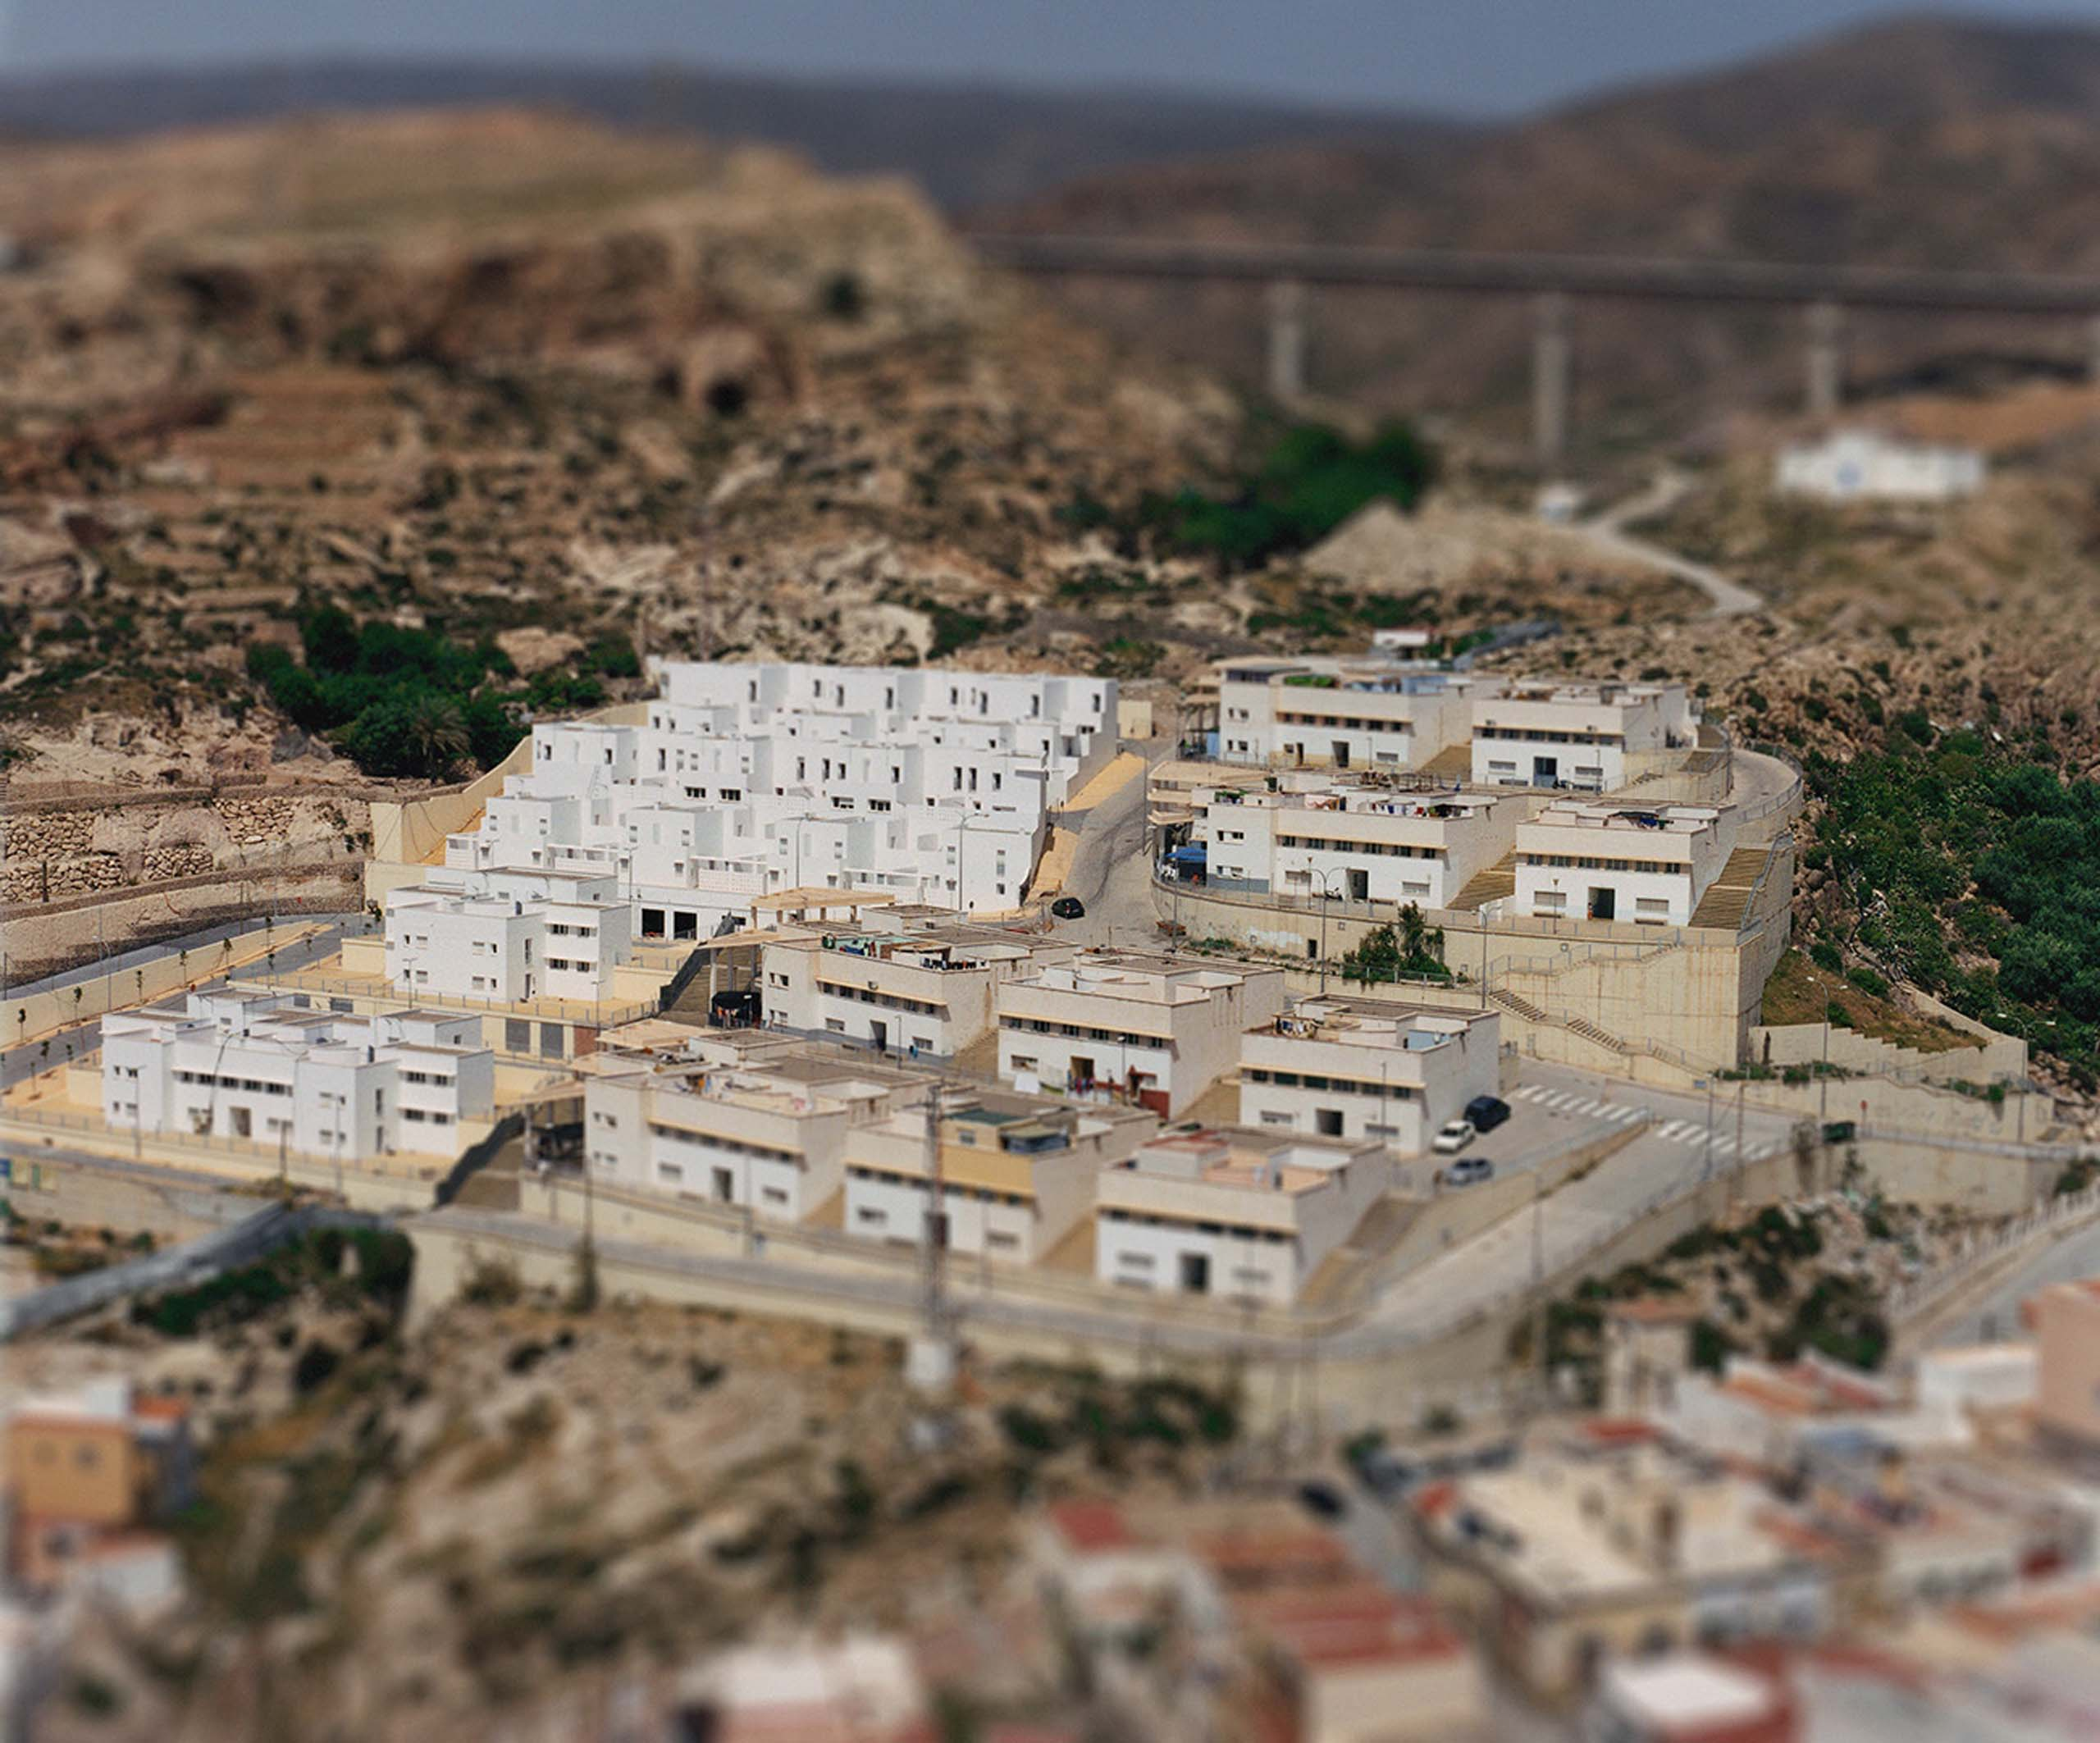 Barrio Almeria from the series Aerial